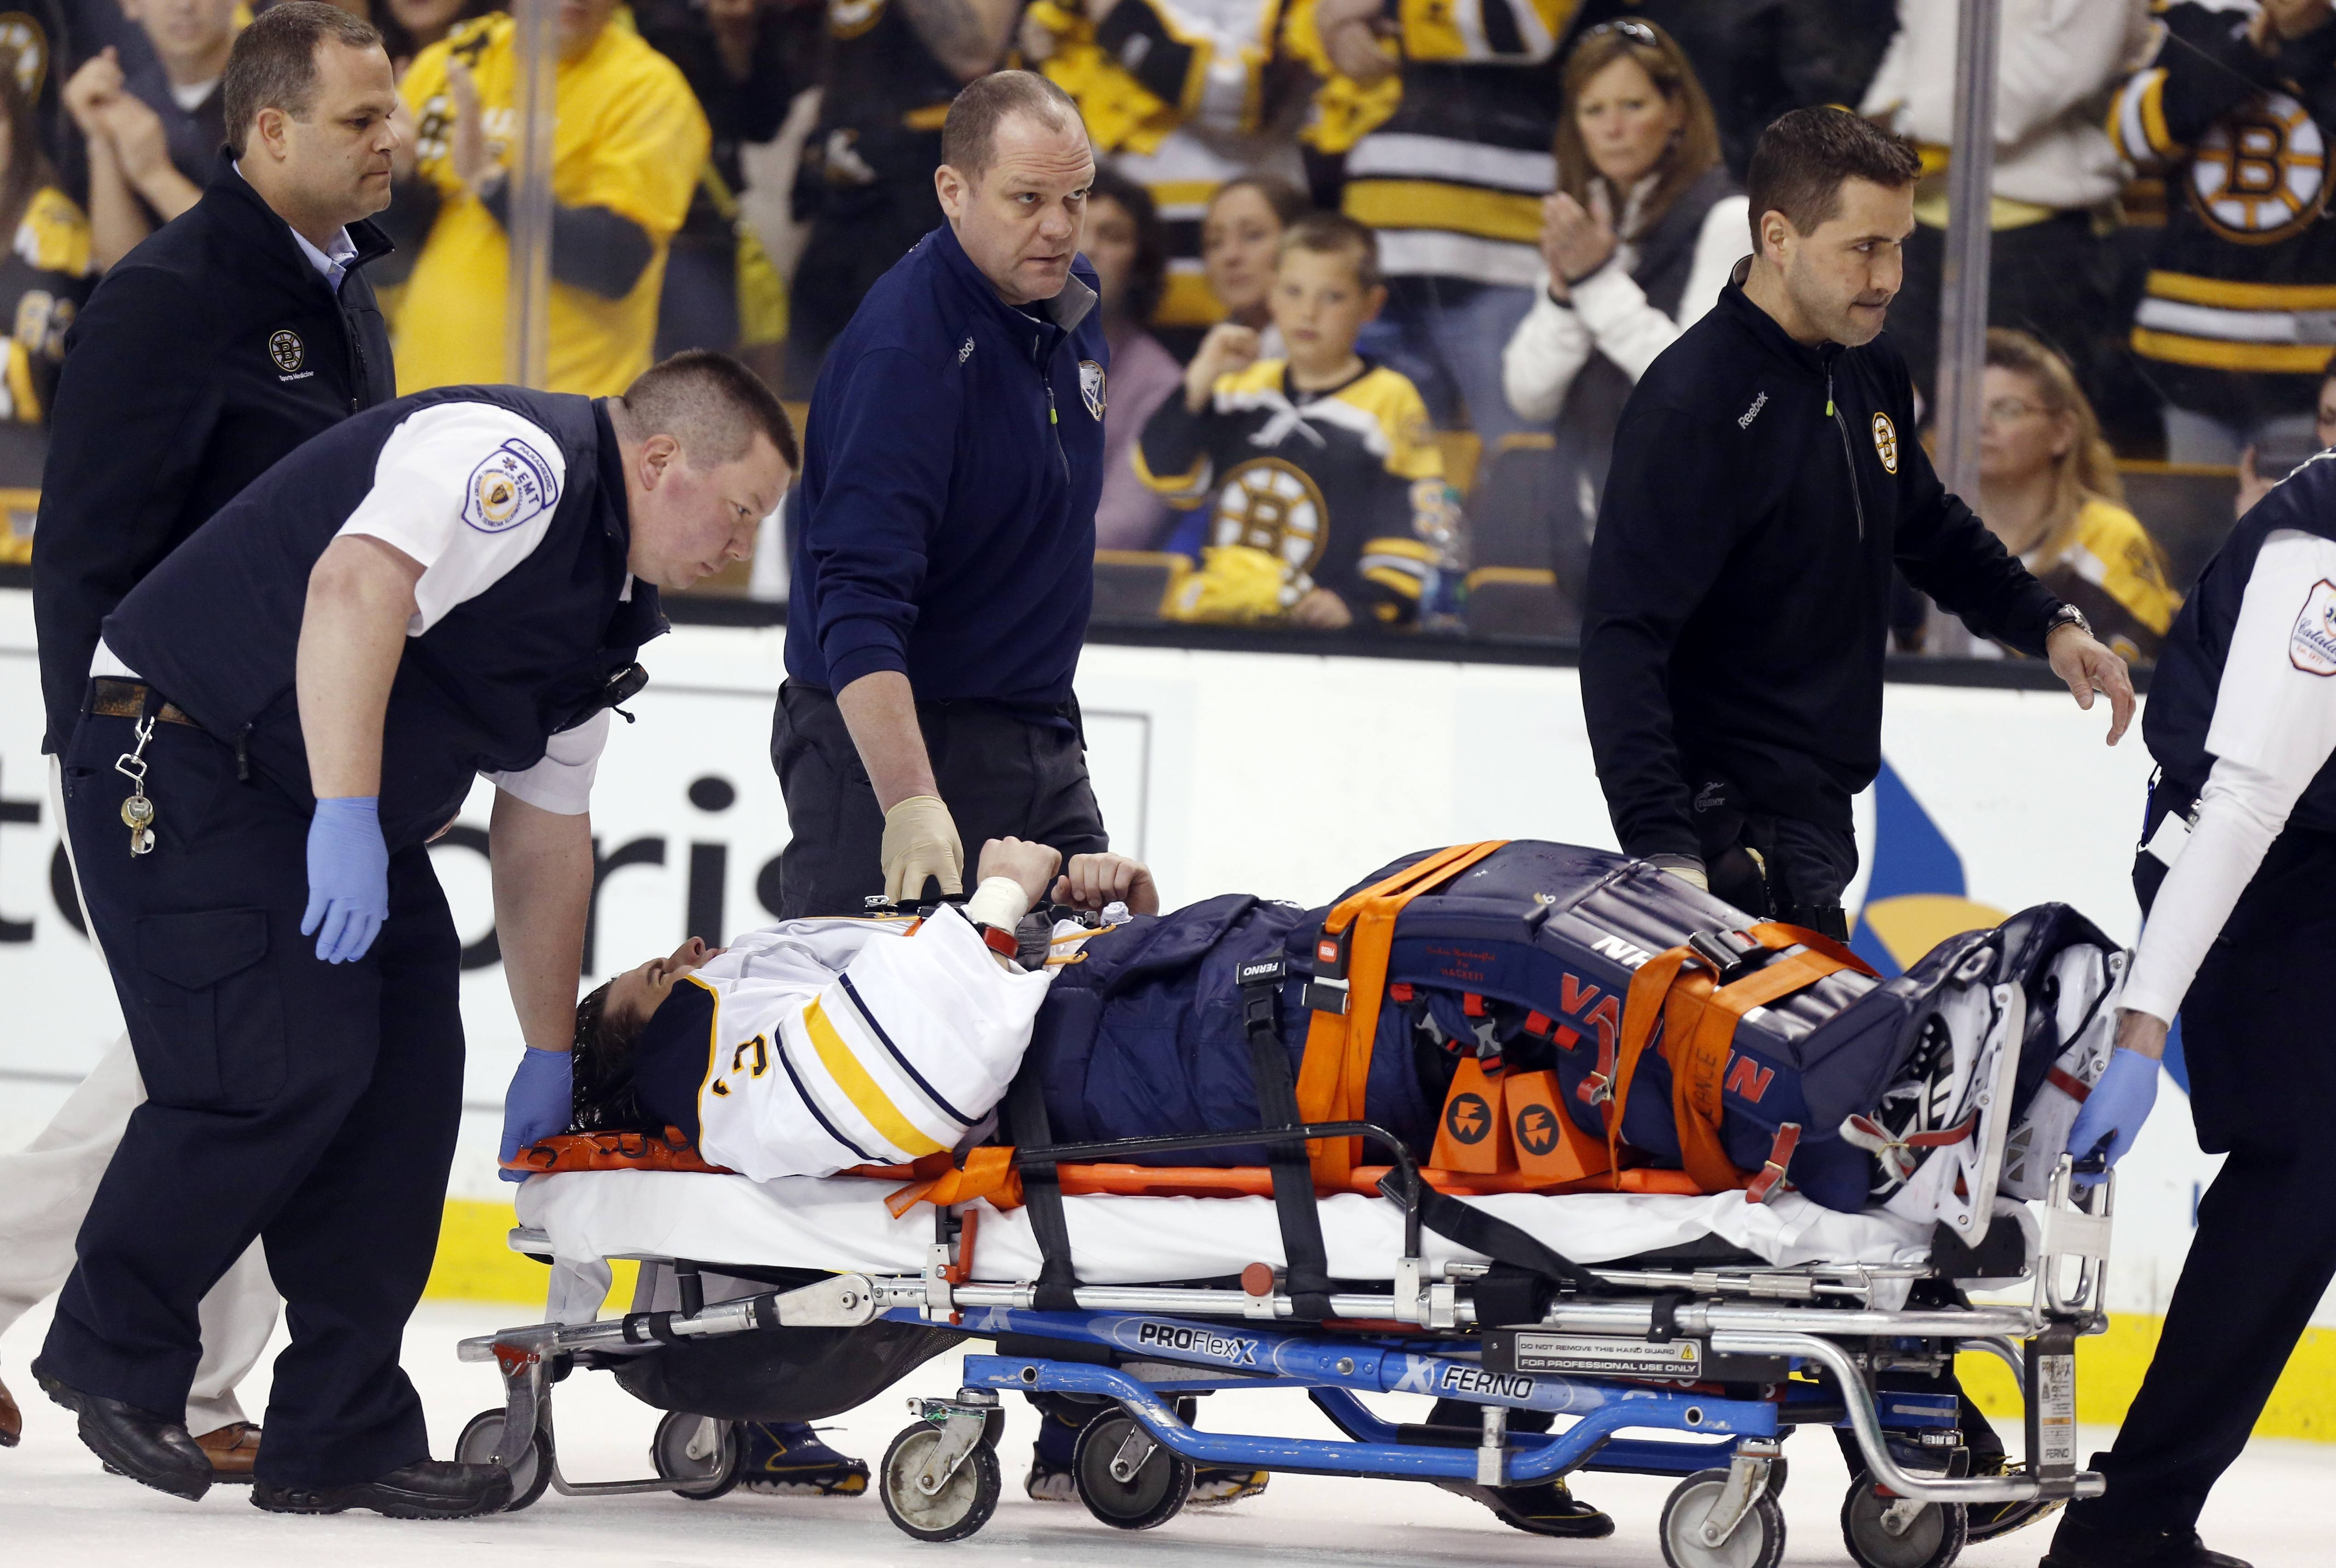 Buffalo Sabres' Matt Hackett (31) is carted off the ice on a stretcher after getting injured in the third period of an NHL hockey game against the Boston Bruins Saturday.